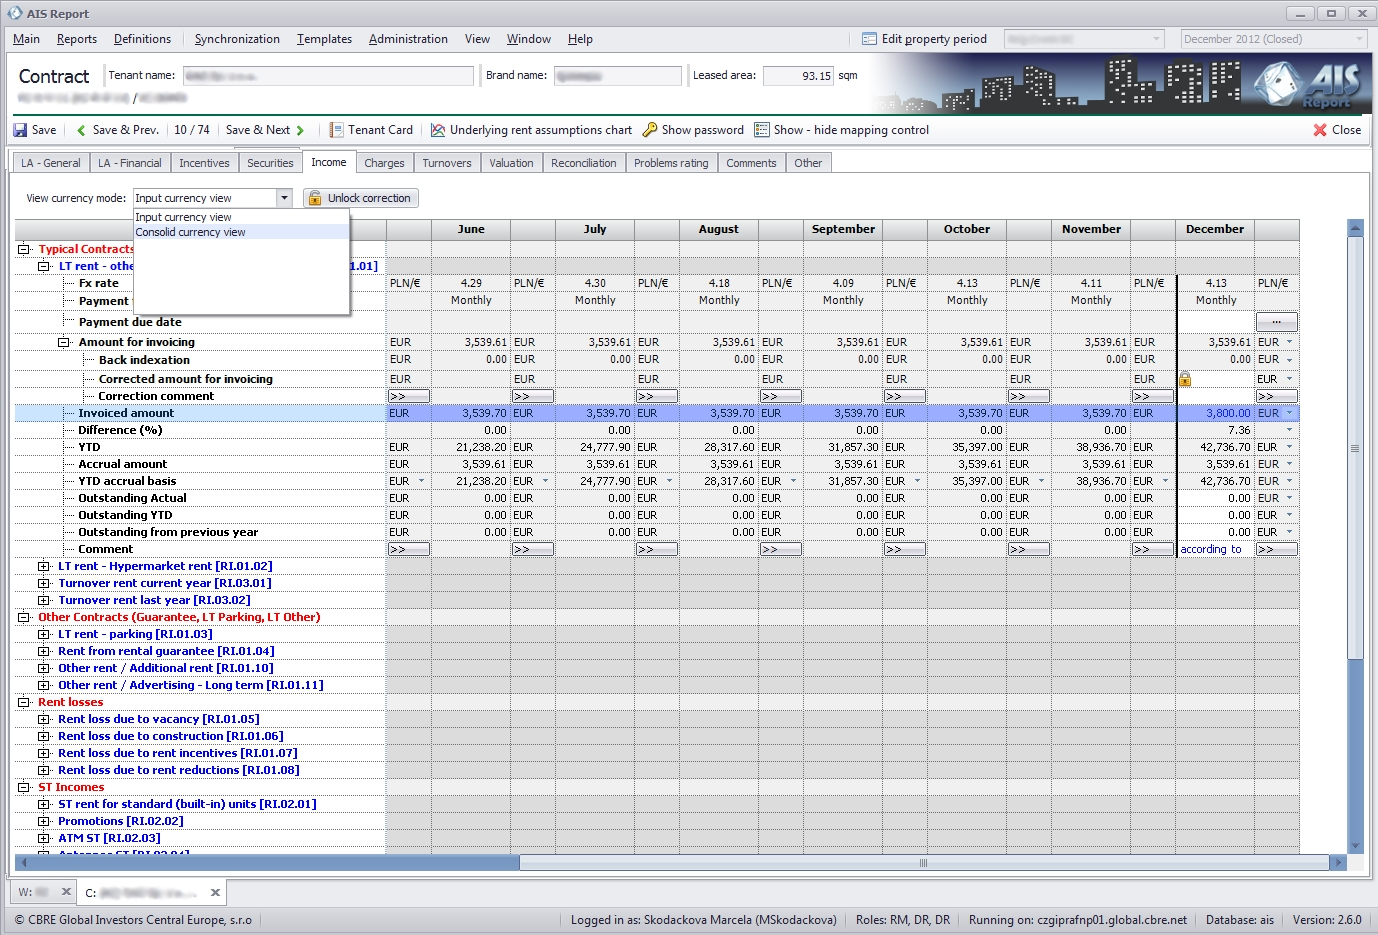 Example Erp Systems - Software Development, Software Solutions inside Examples Of Erp Systems 56554